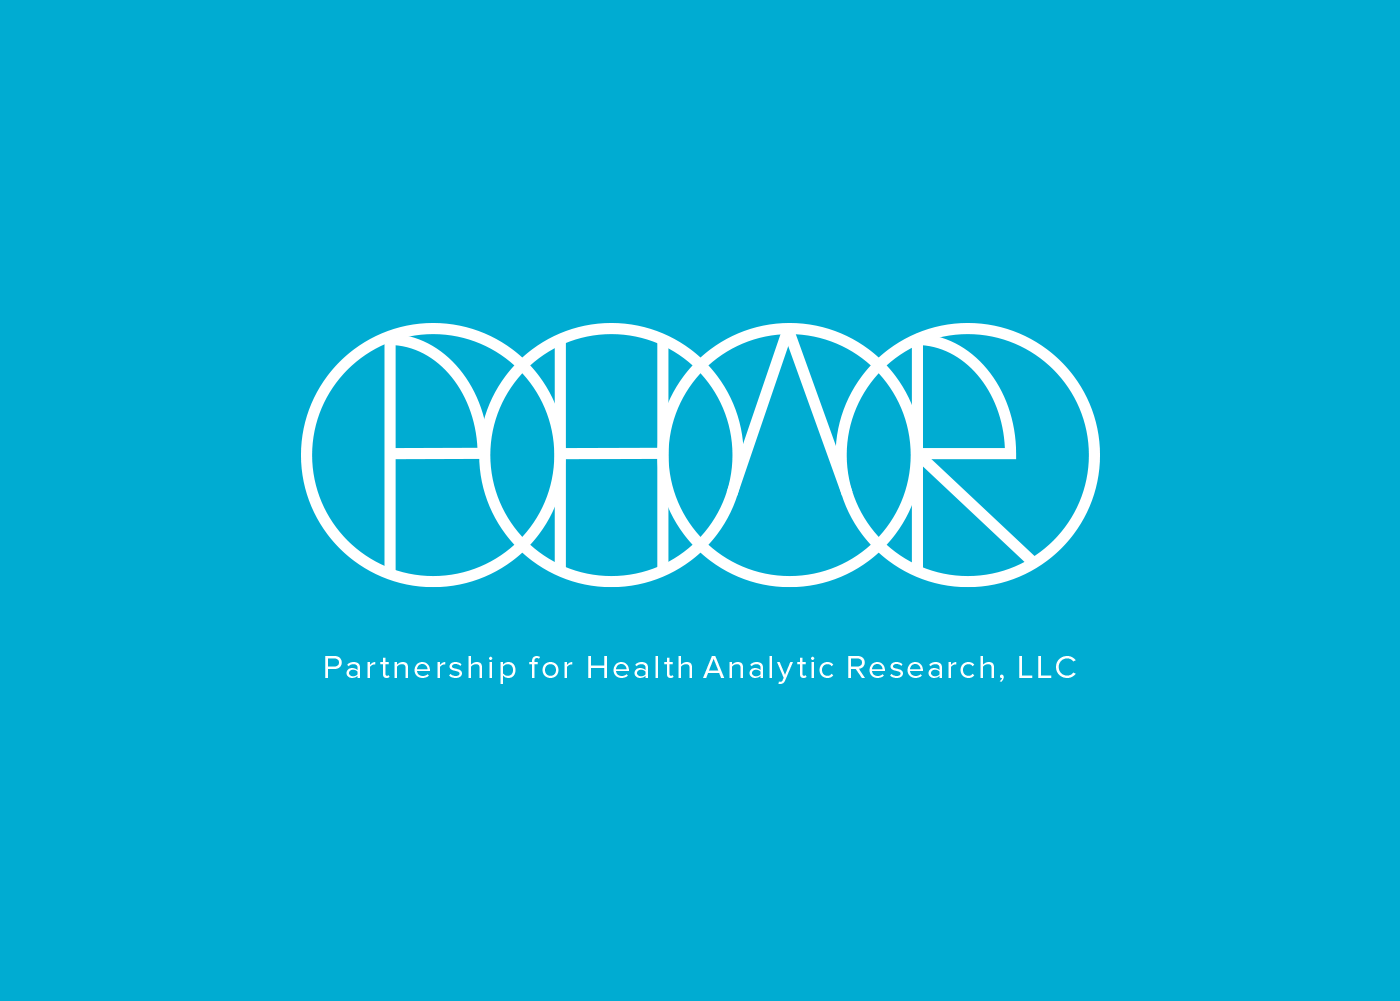 Partnership for Health Analytic Research